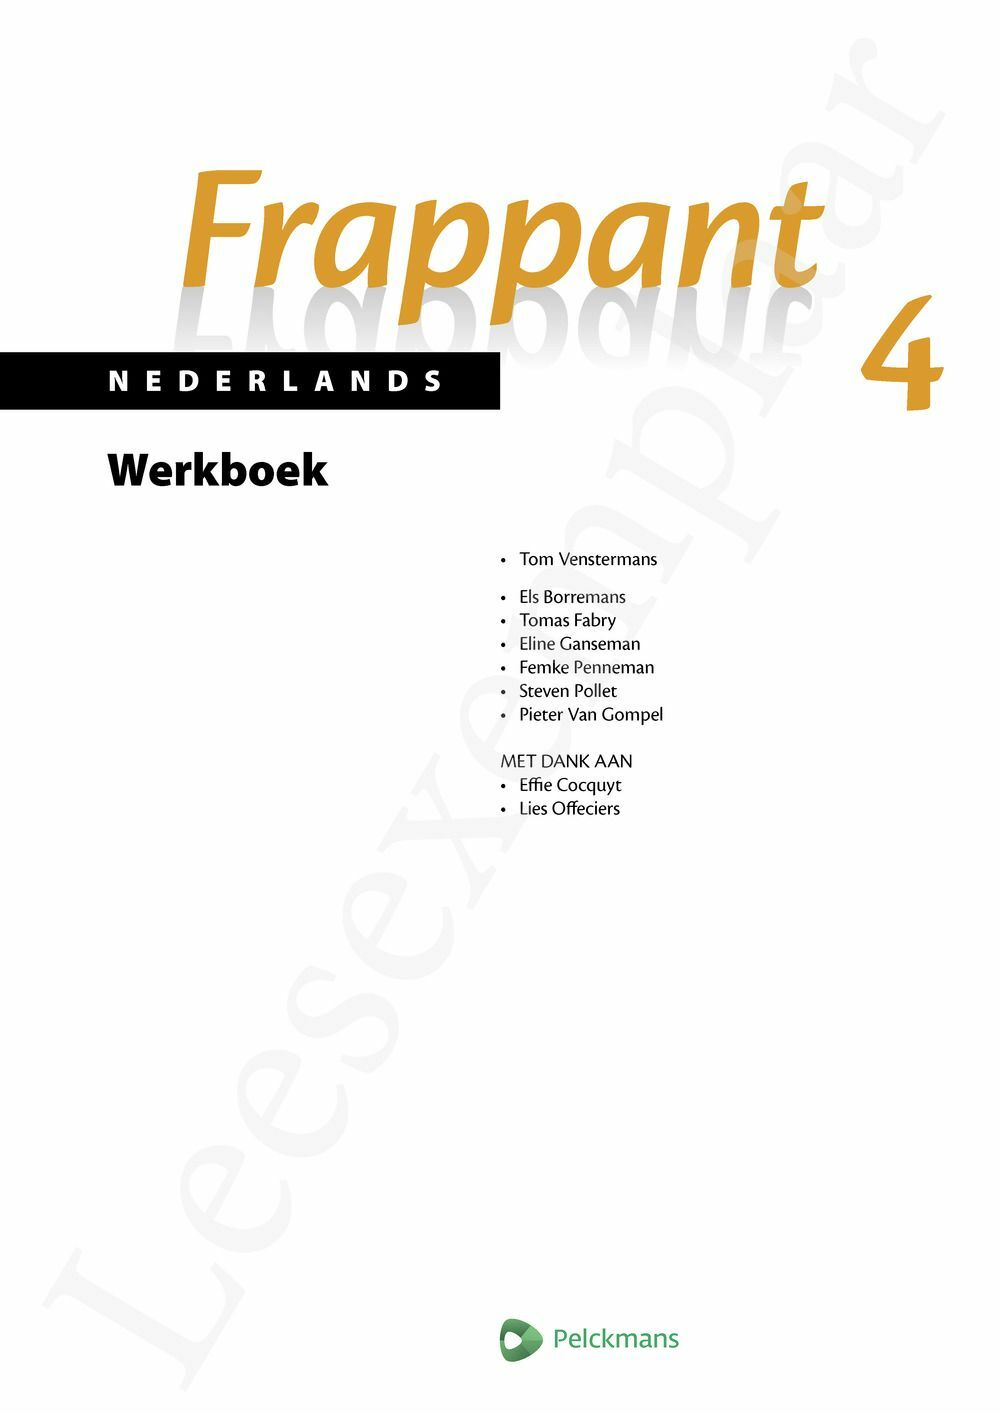 Preview: Frappant Nederlands 4 aso Werkboek